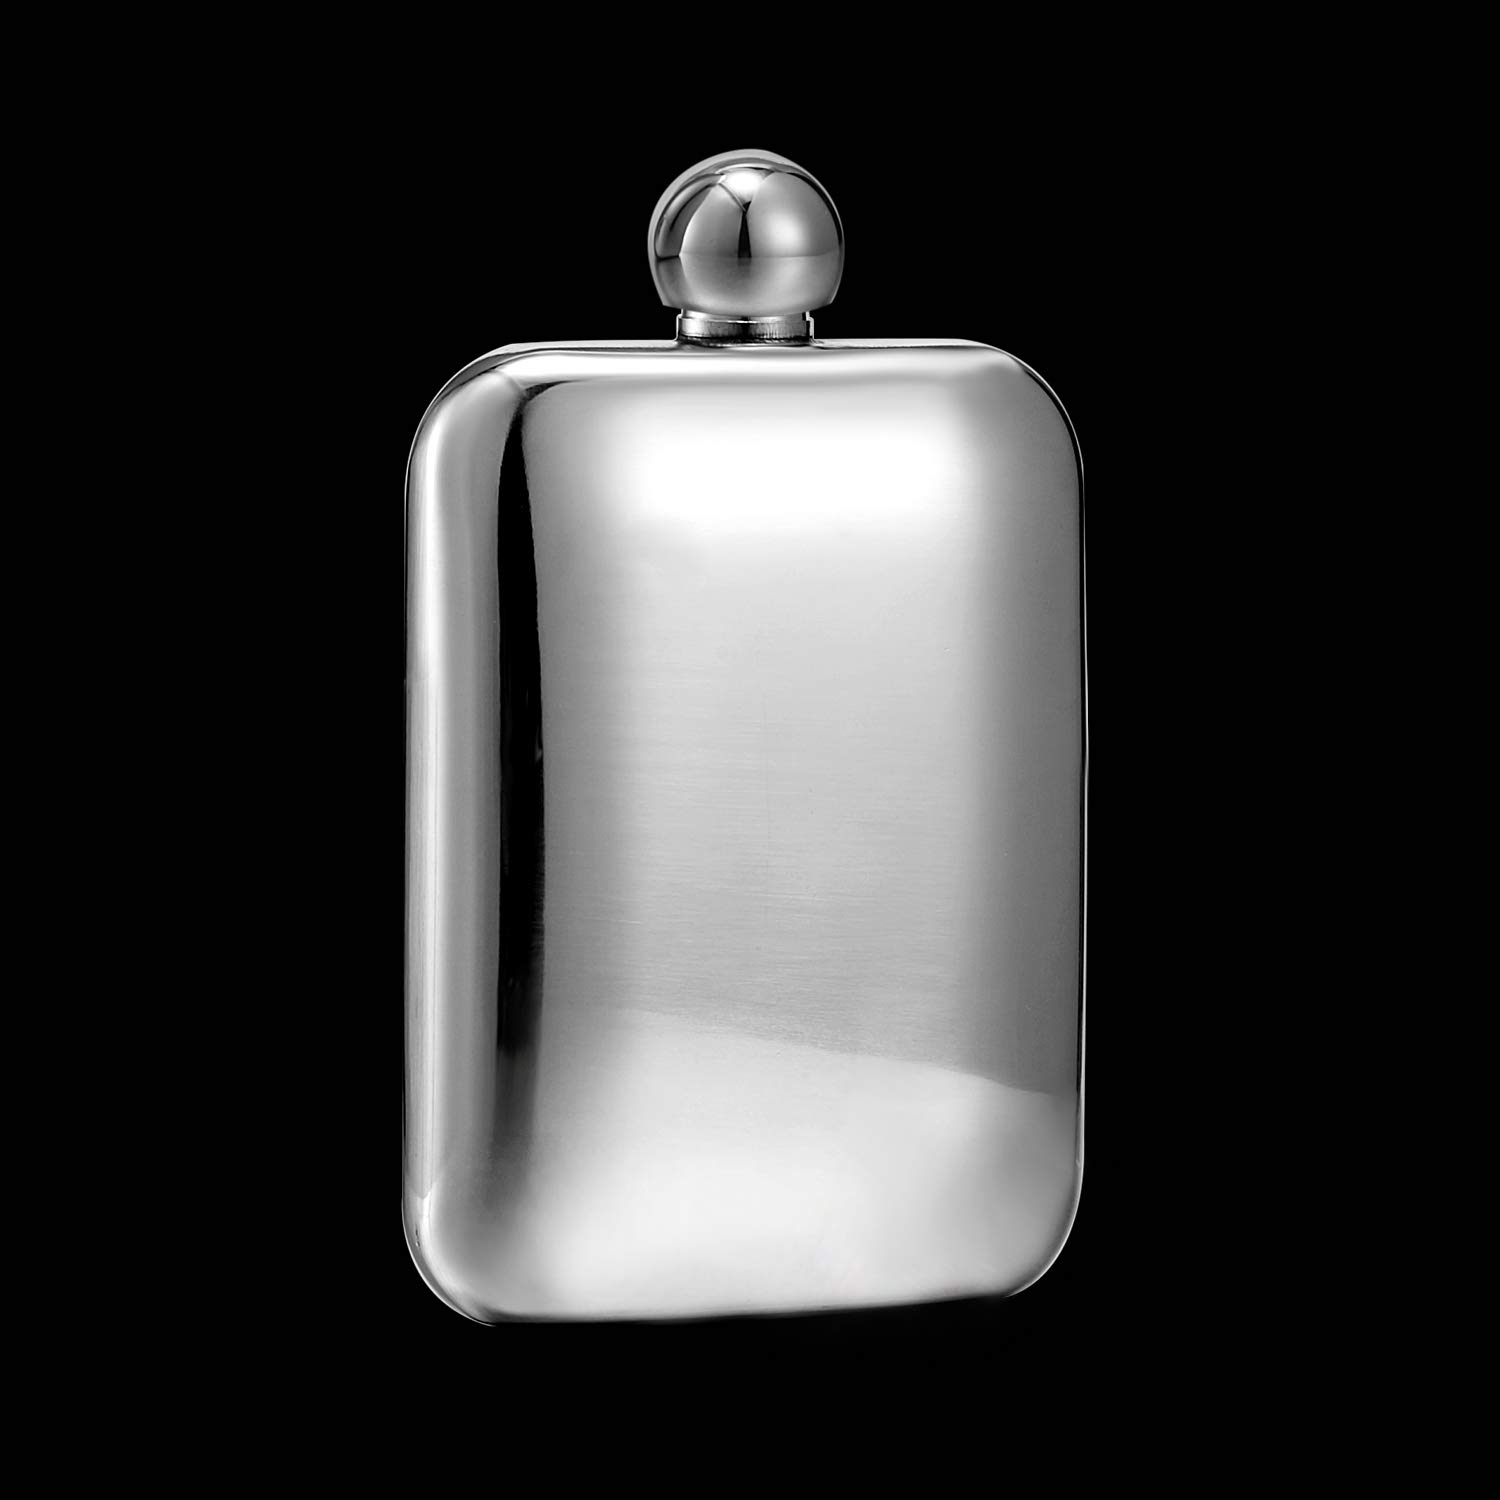 Booze Shot Flask AB Crystal Lid Creative 304 Stainless Steel Wine Alcohol Liquor Flask for Women Girls Men Party Hand size Flask-6OZ Black, 1